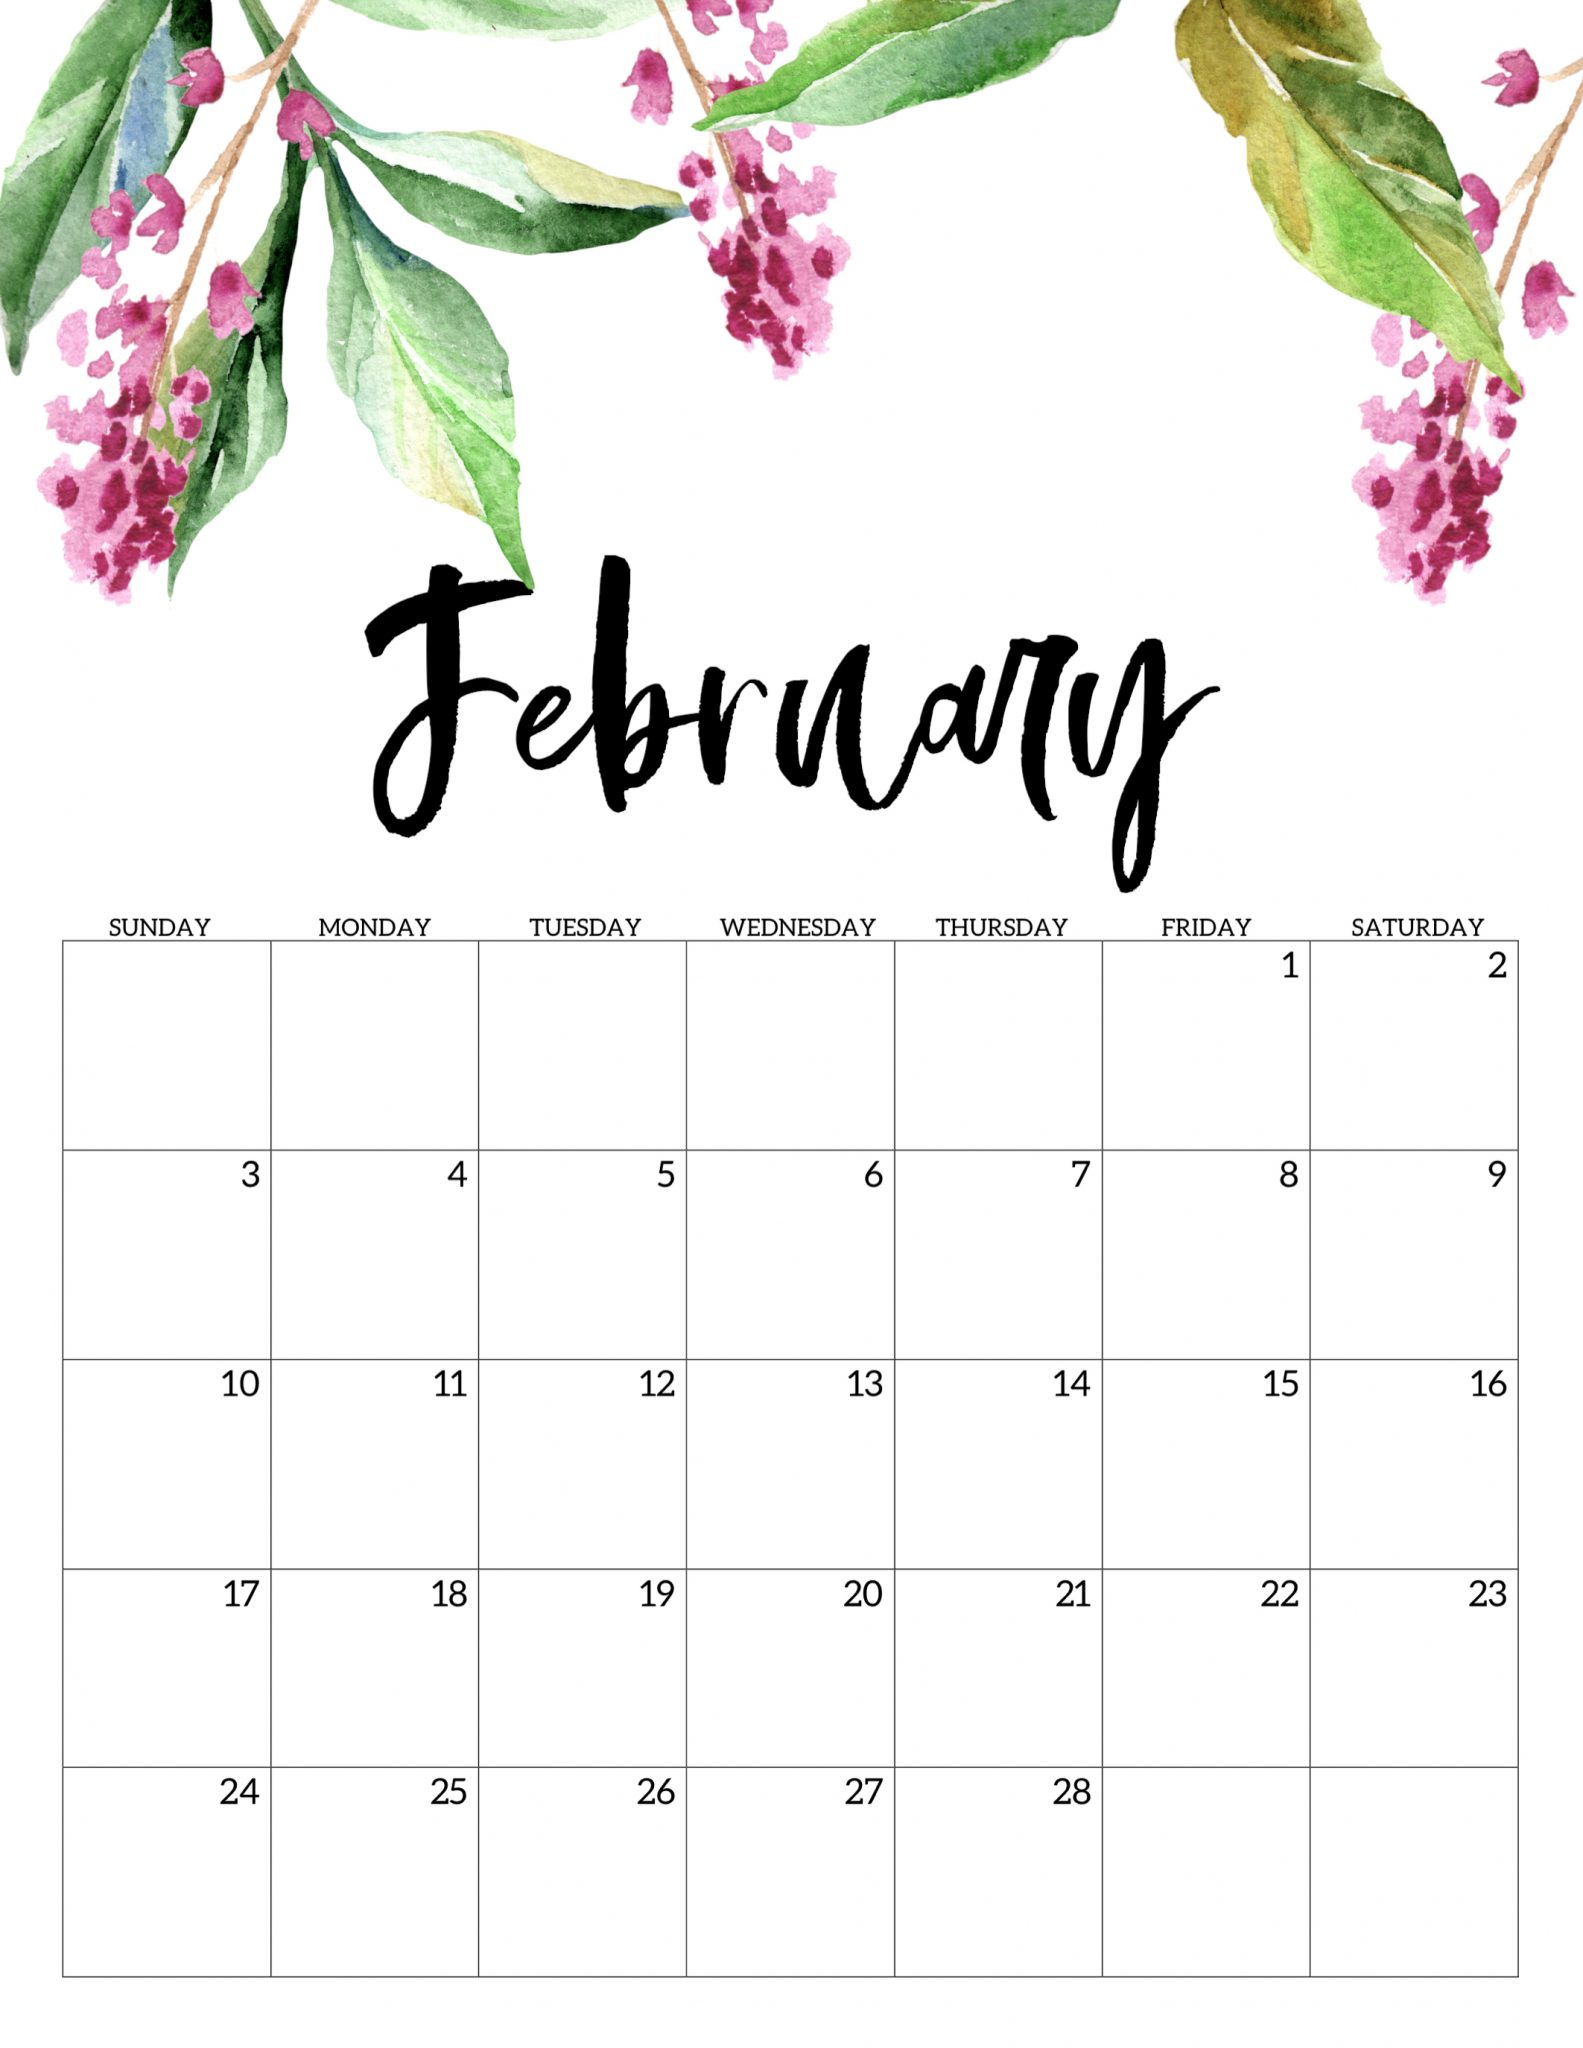 February 2019 Printable Calendar In Pdf Word Excel With Holidays